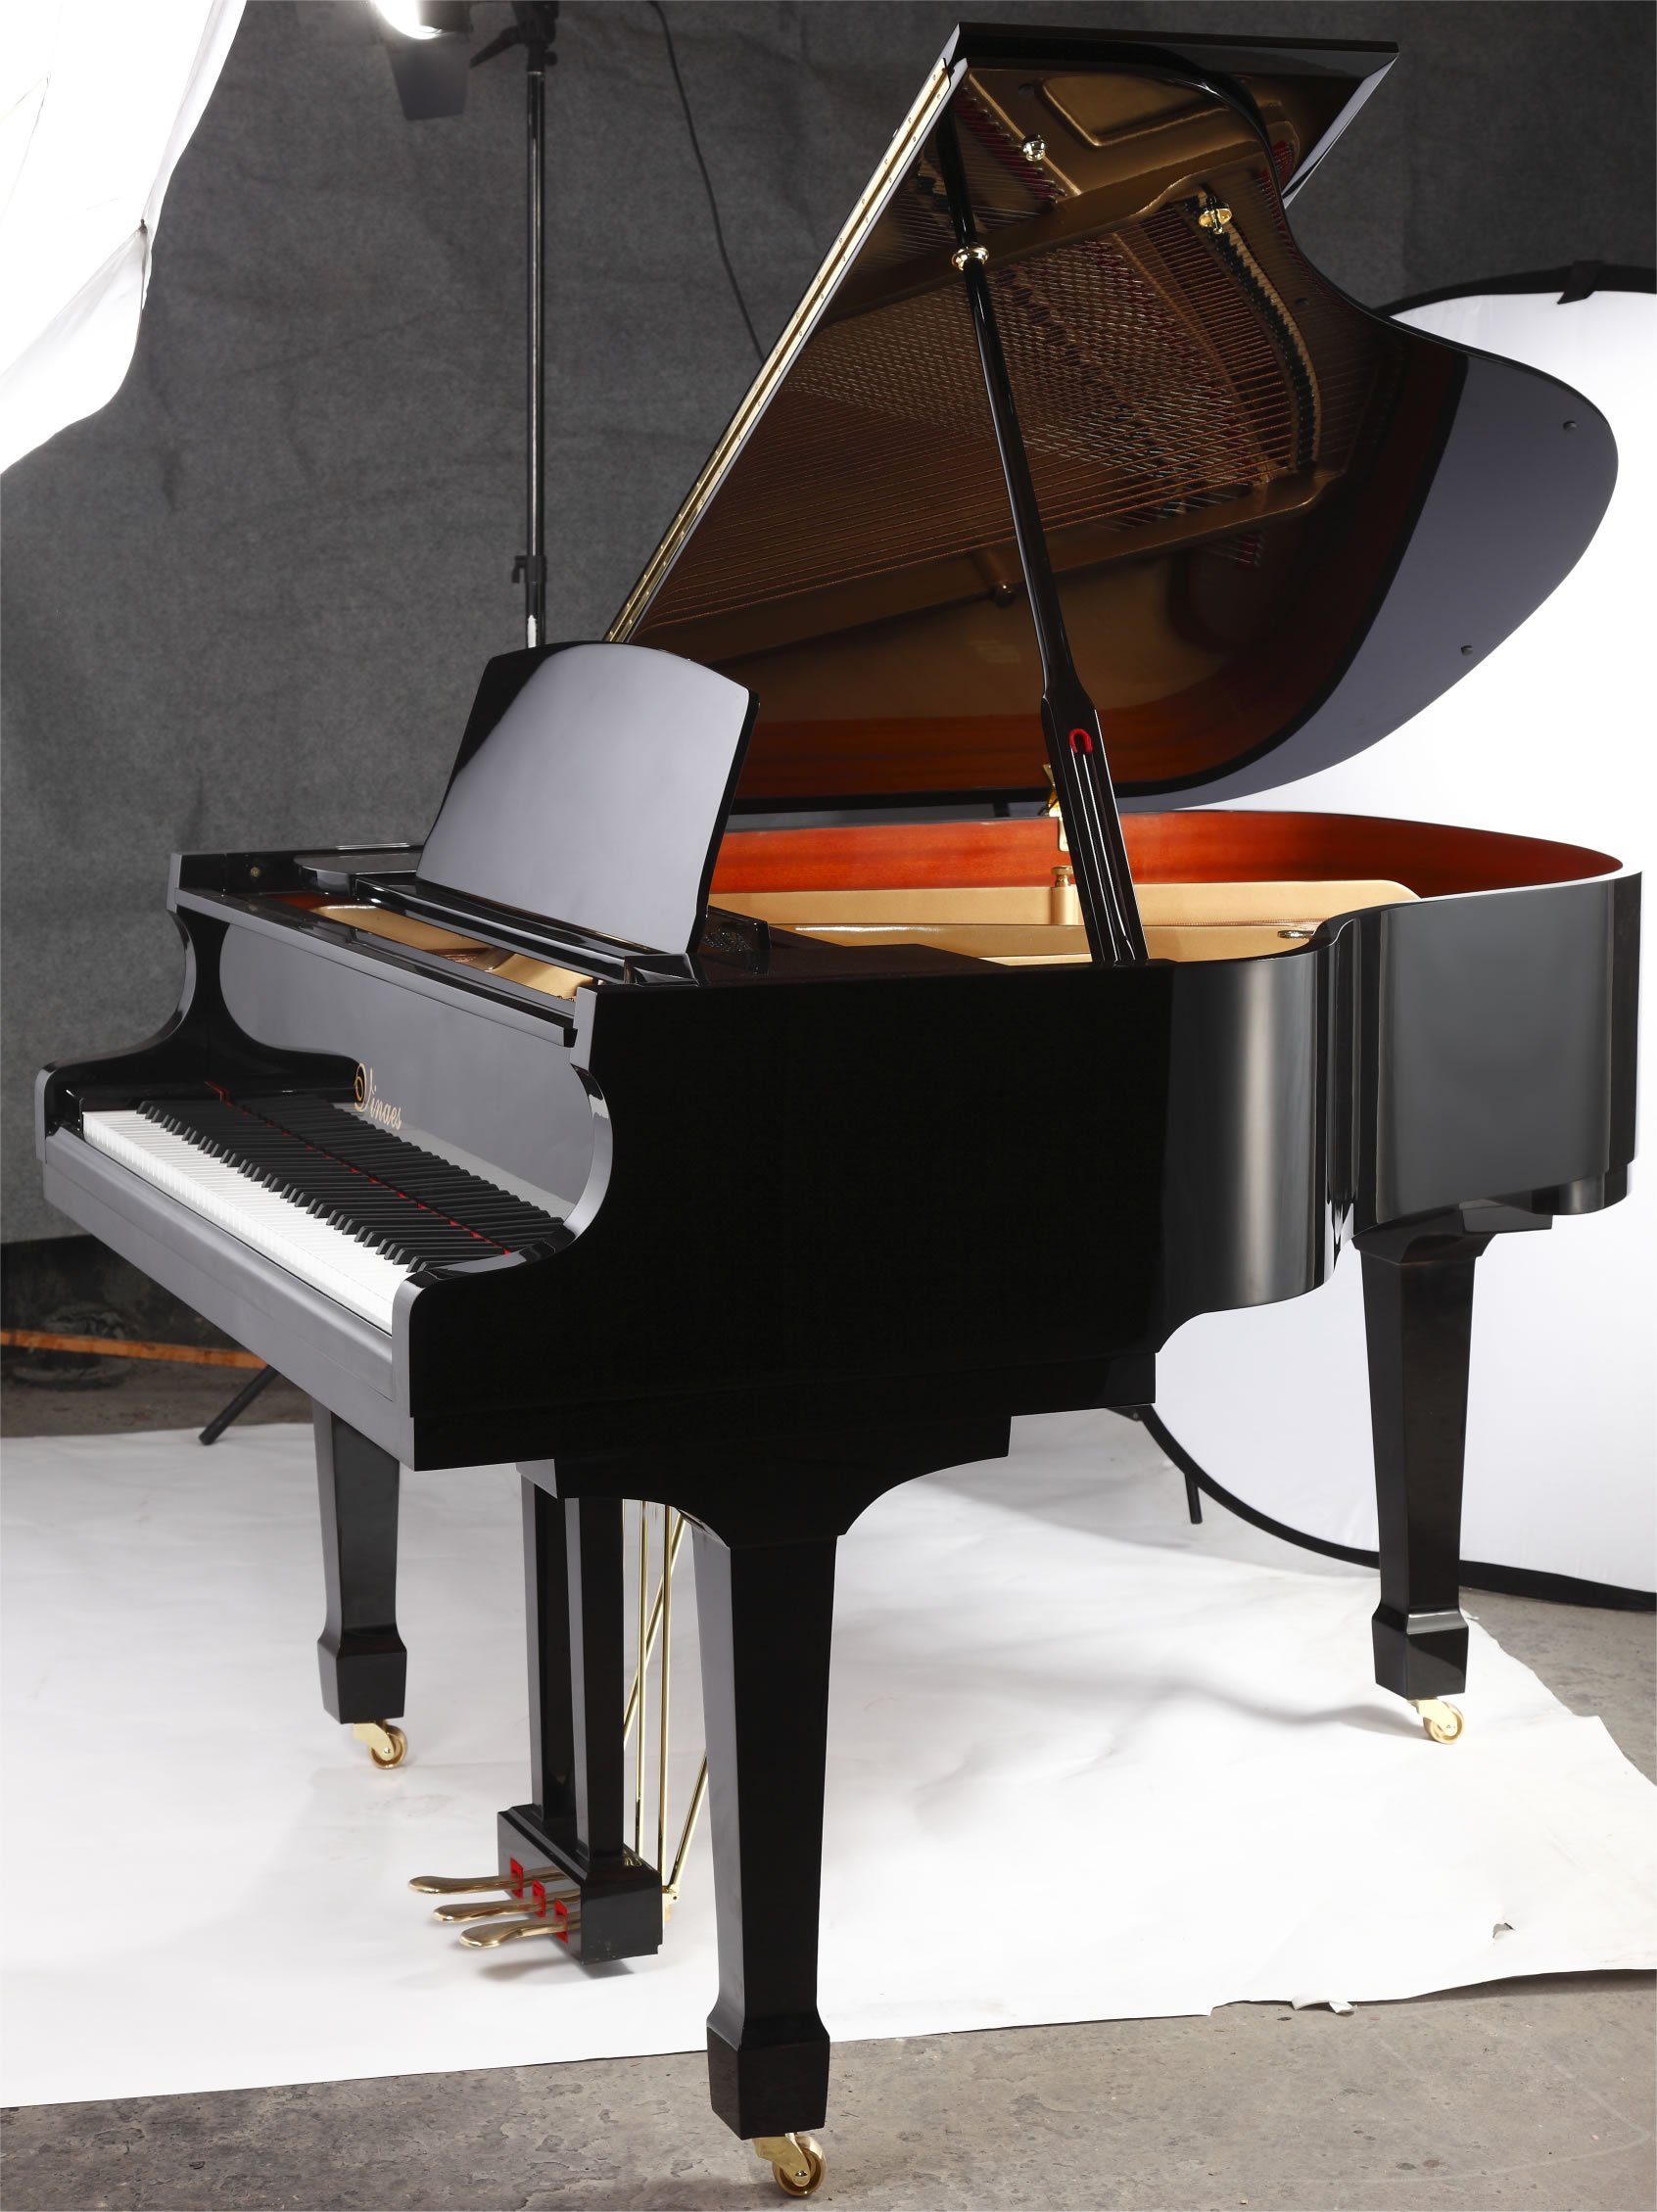 "Steinhoven SG148 Grand Piano, Polished Ebony (148cm, 4'9"") - FREE DELIVERY"